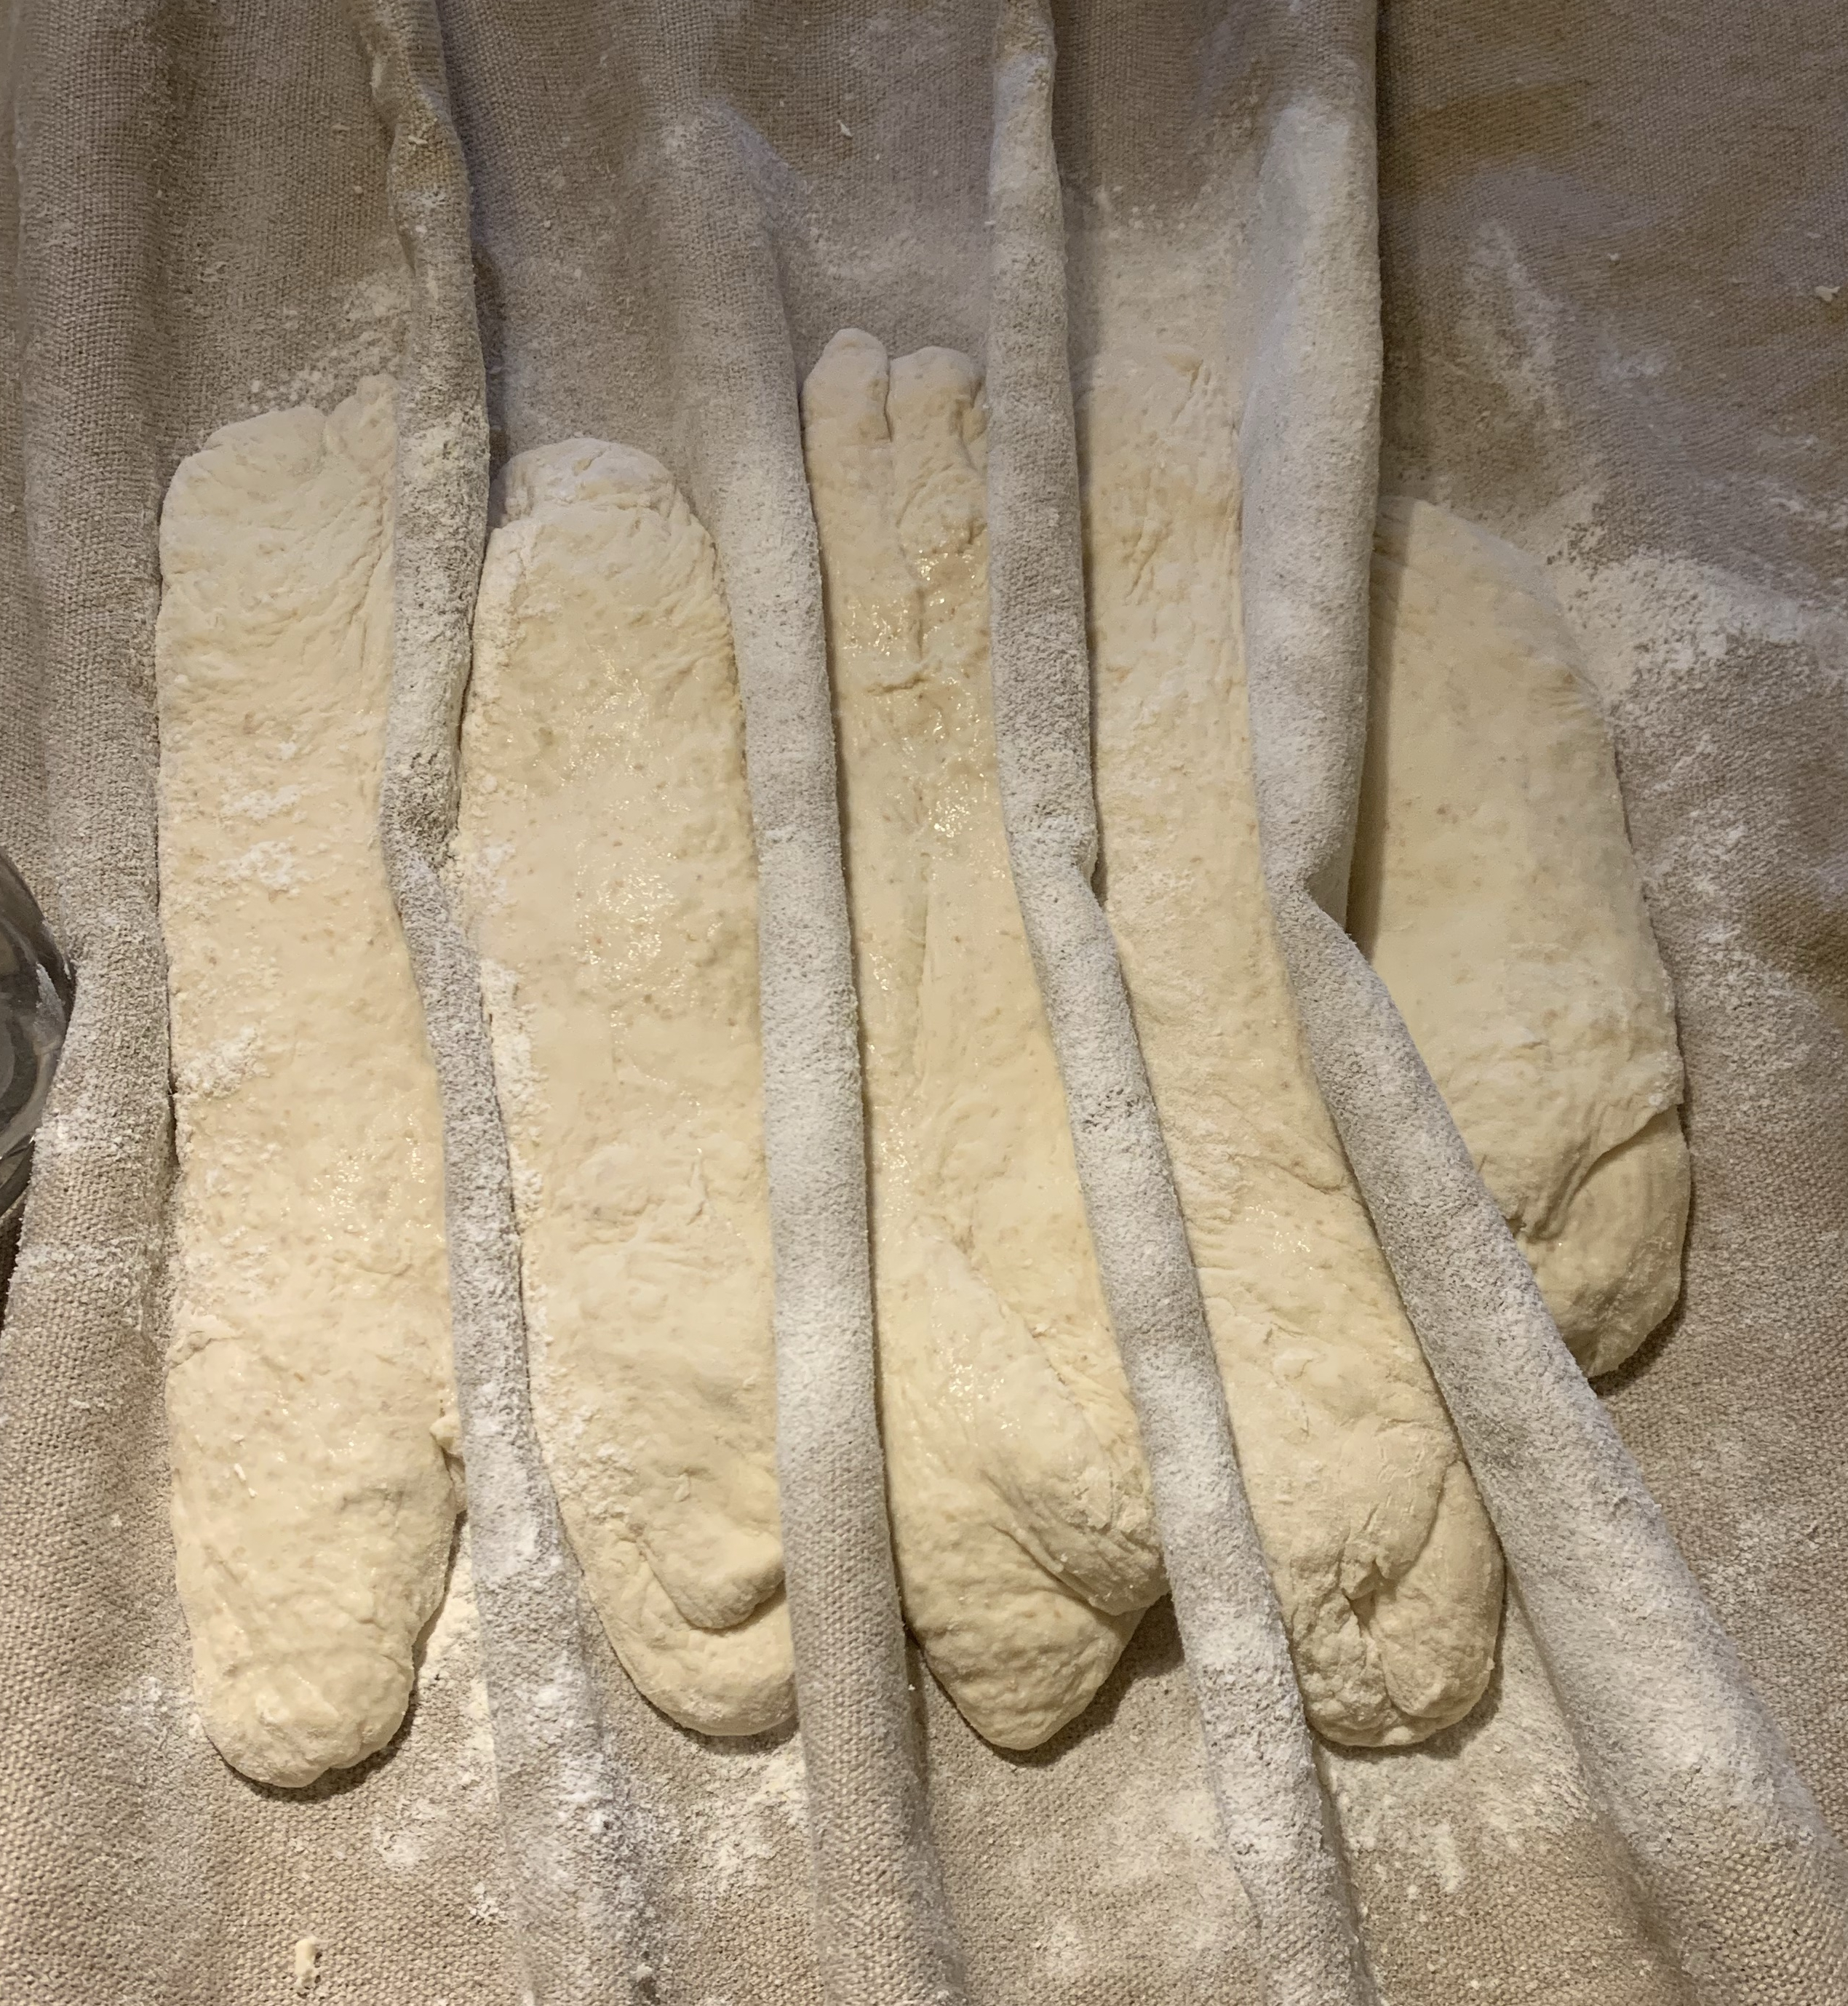 Five loaves of birote dough side by side in a couche.